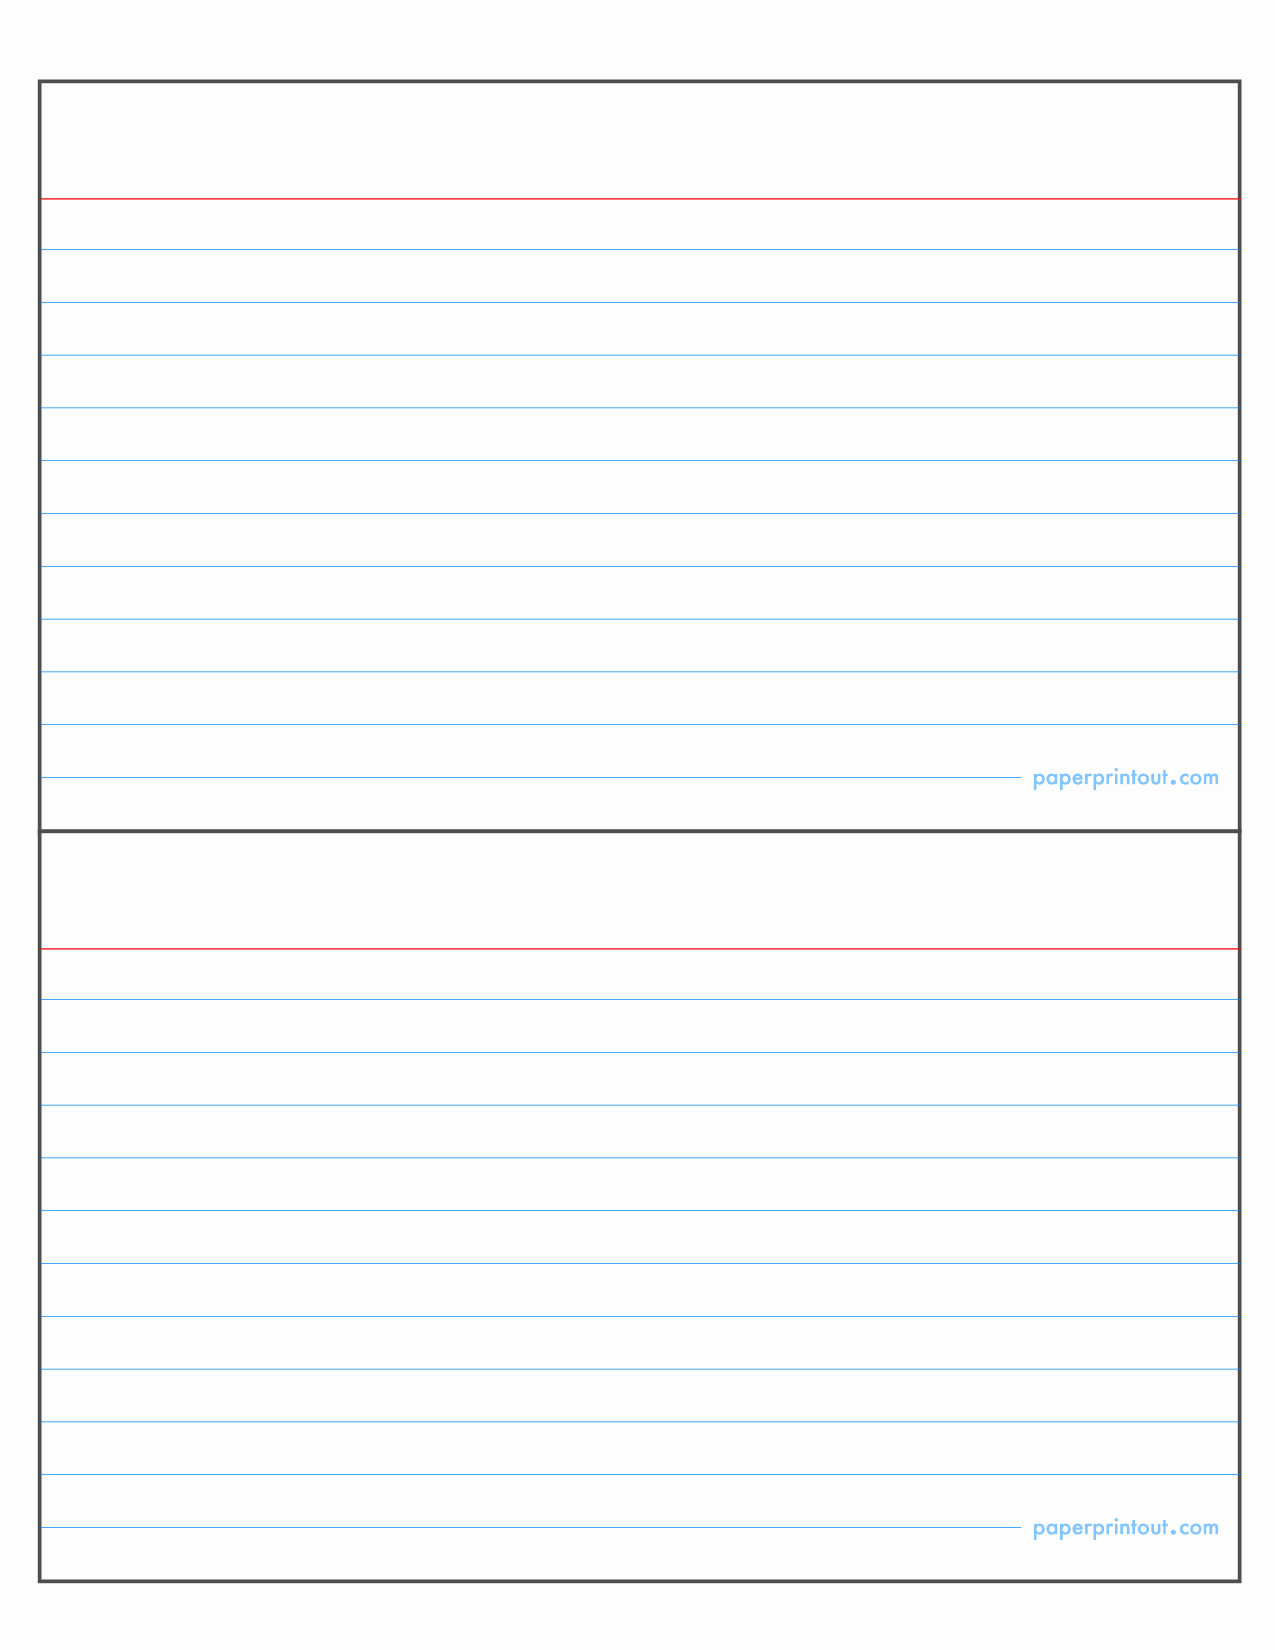 5x7 Greeting Card Template Word Unique Index Card Template